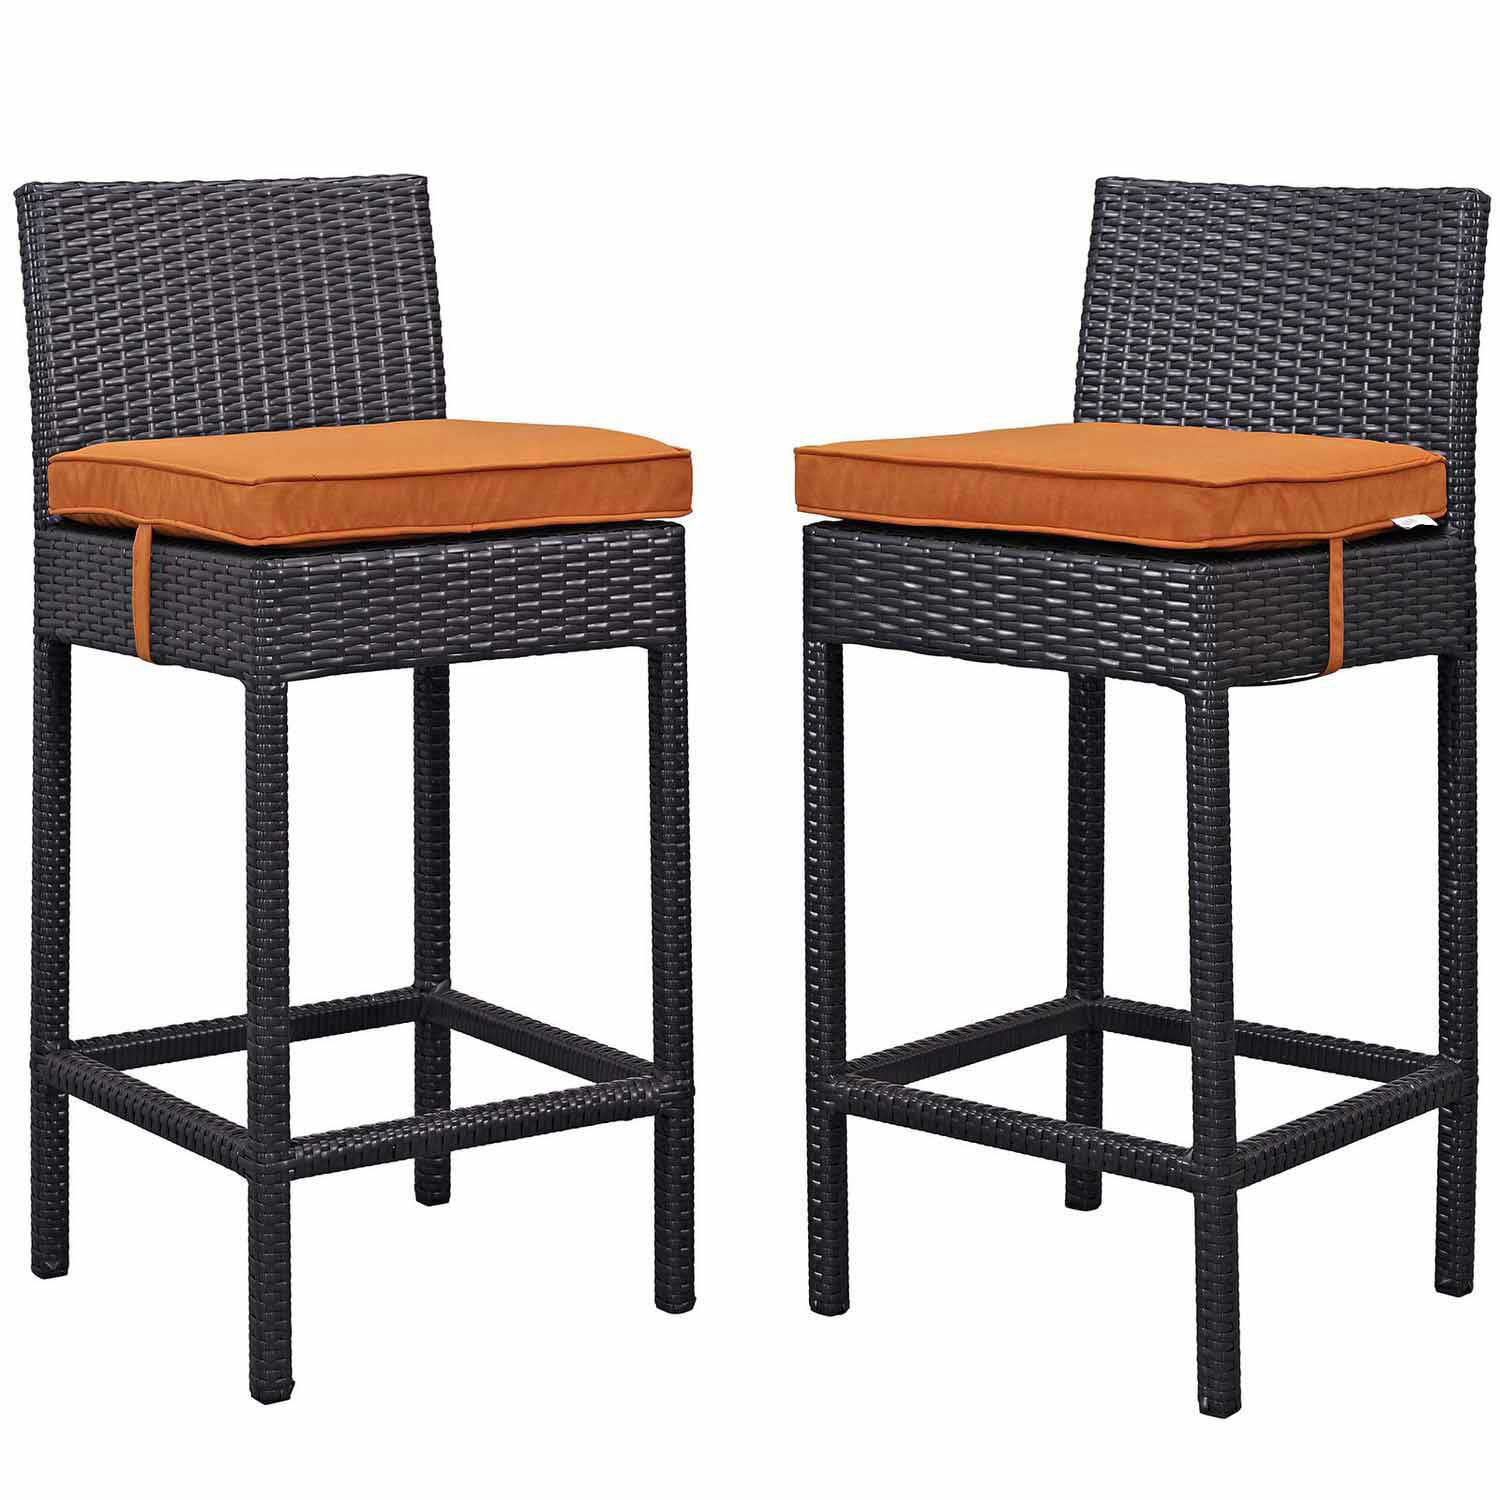 Modway Lift Bar Stool Outdoor Patio Set of 2 - Espresso Orange